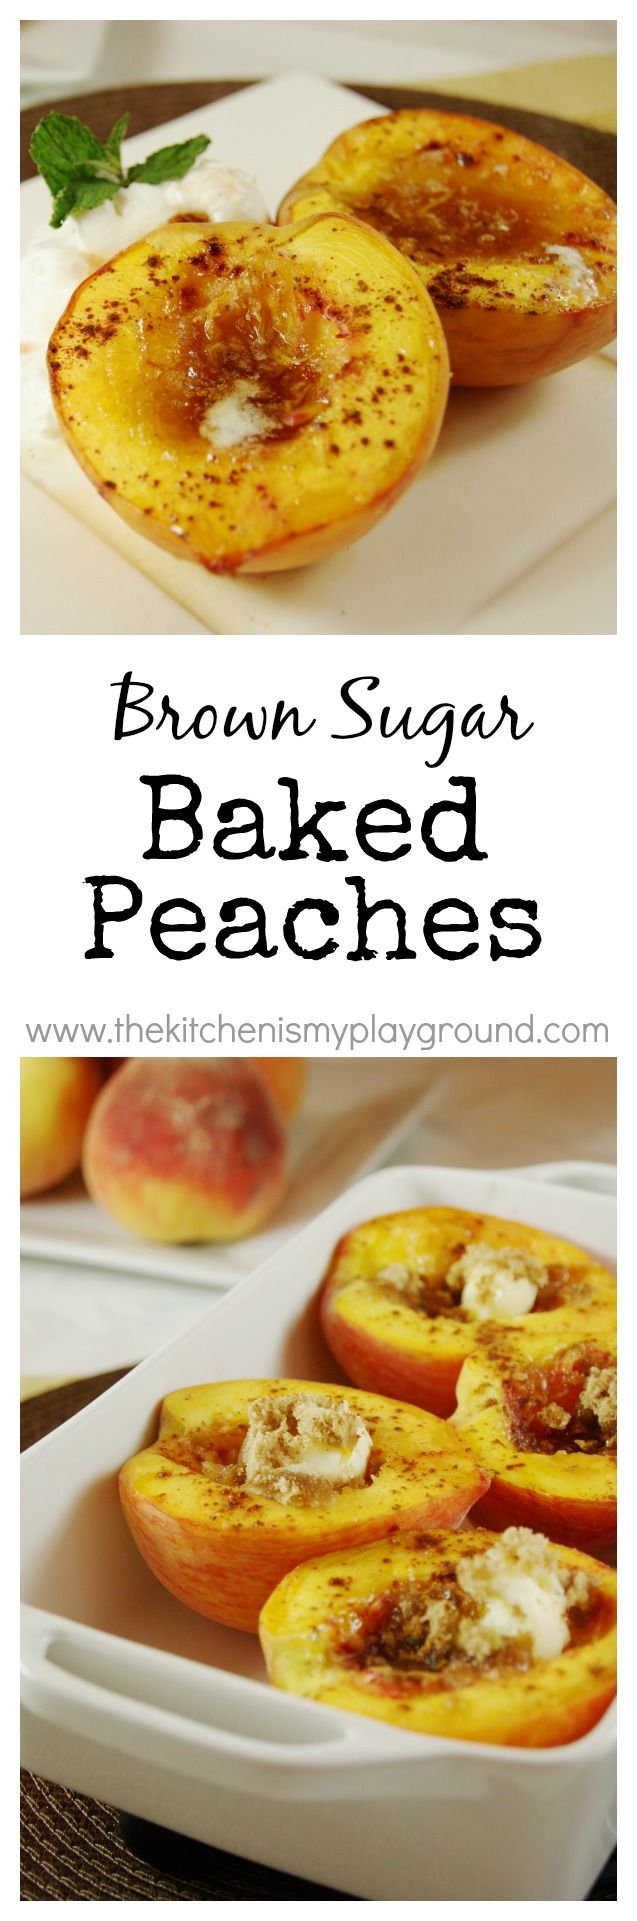 Brown Sugar Baked Peaches. At ~100 calories, these are a beautiful & delicious health{ier} sweet treat! www.thekitchenismyplayground.com